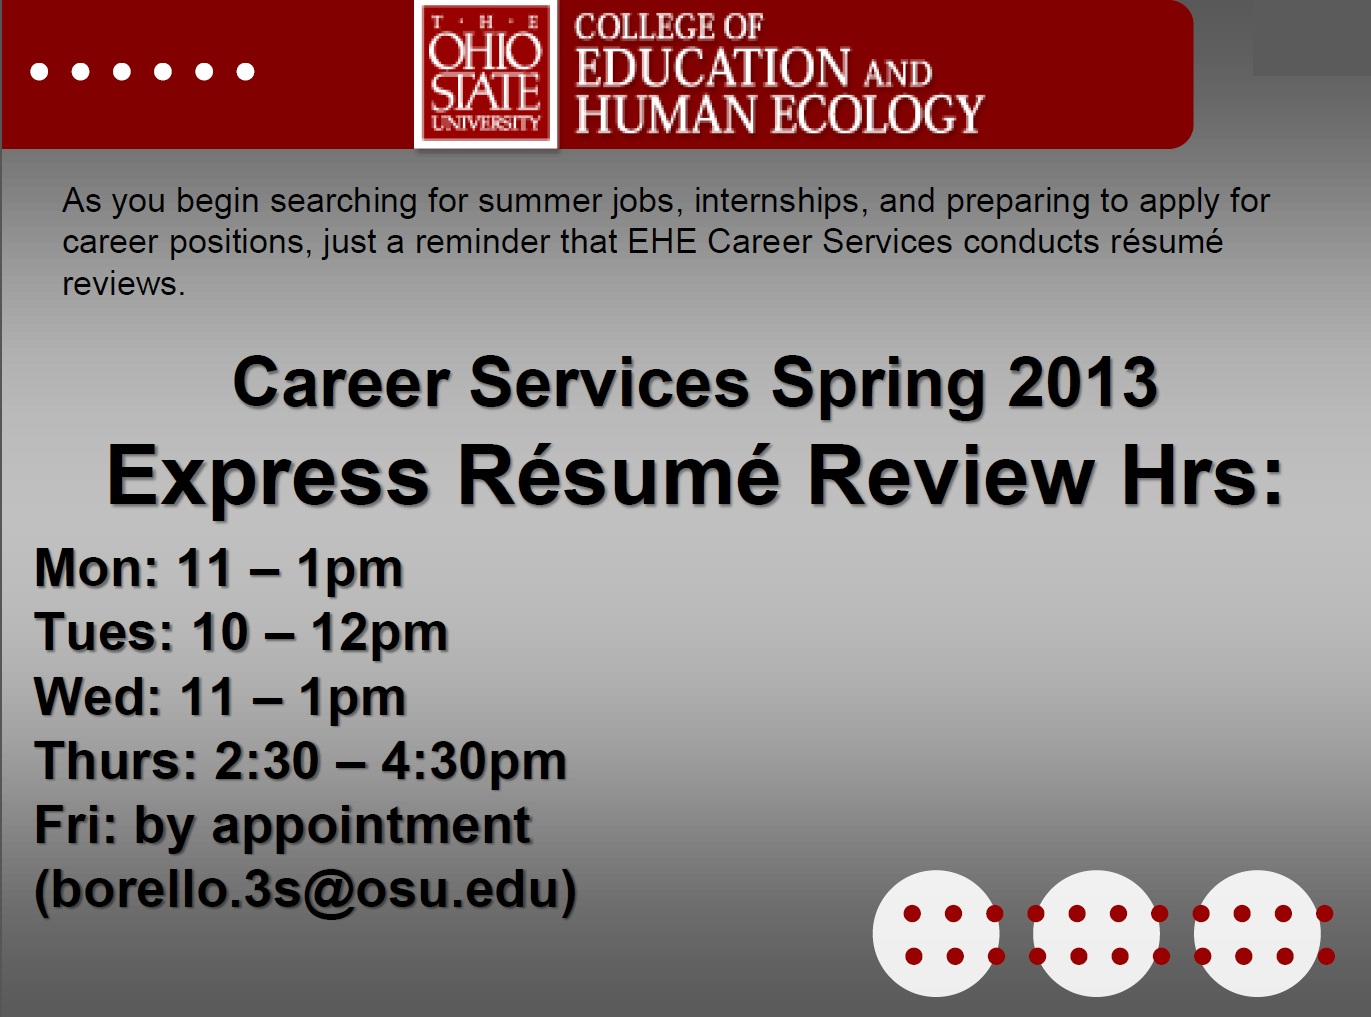 the ohio state university anita parker osu 2013 application career college of education and human ecology osu resume review services spring the ohio state university